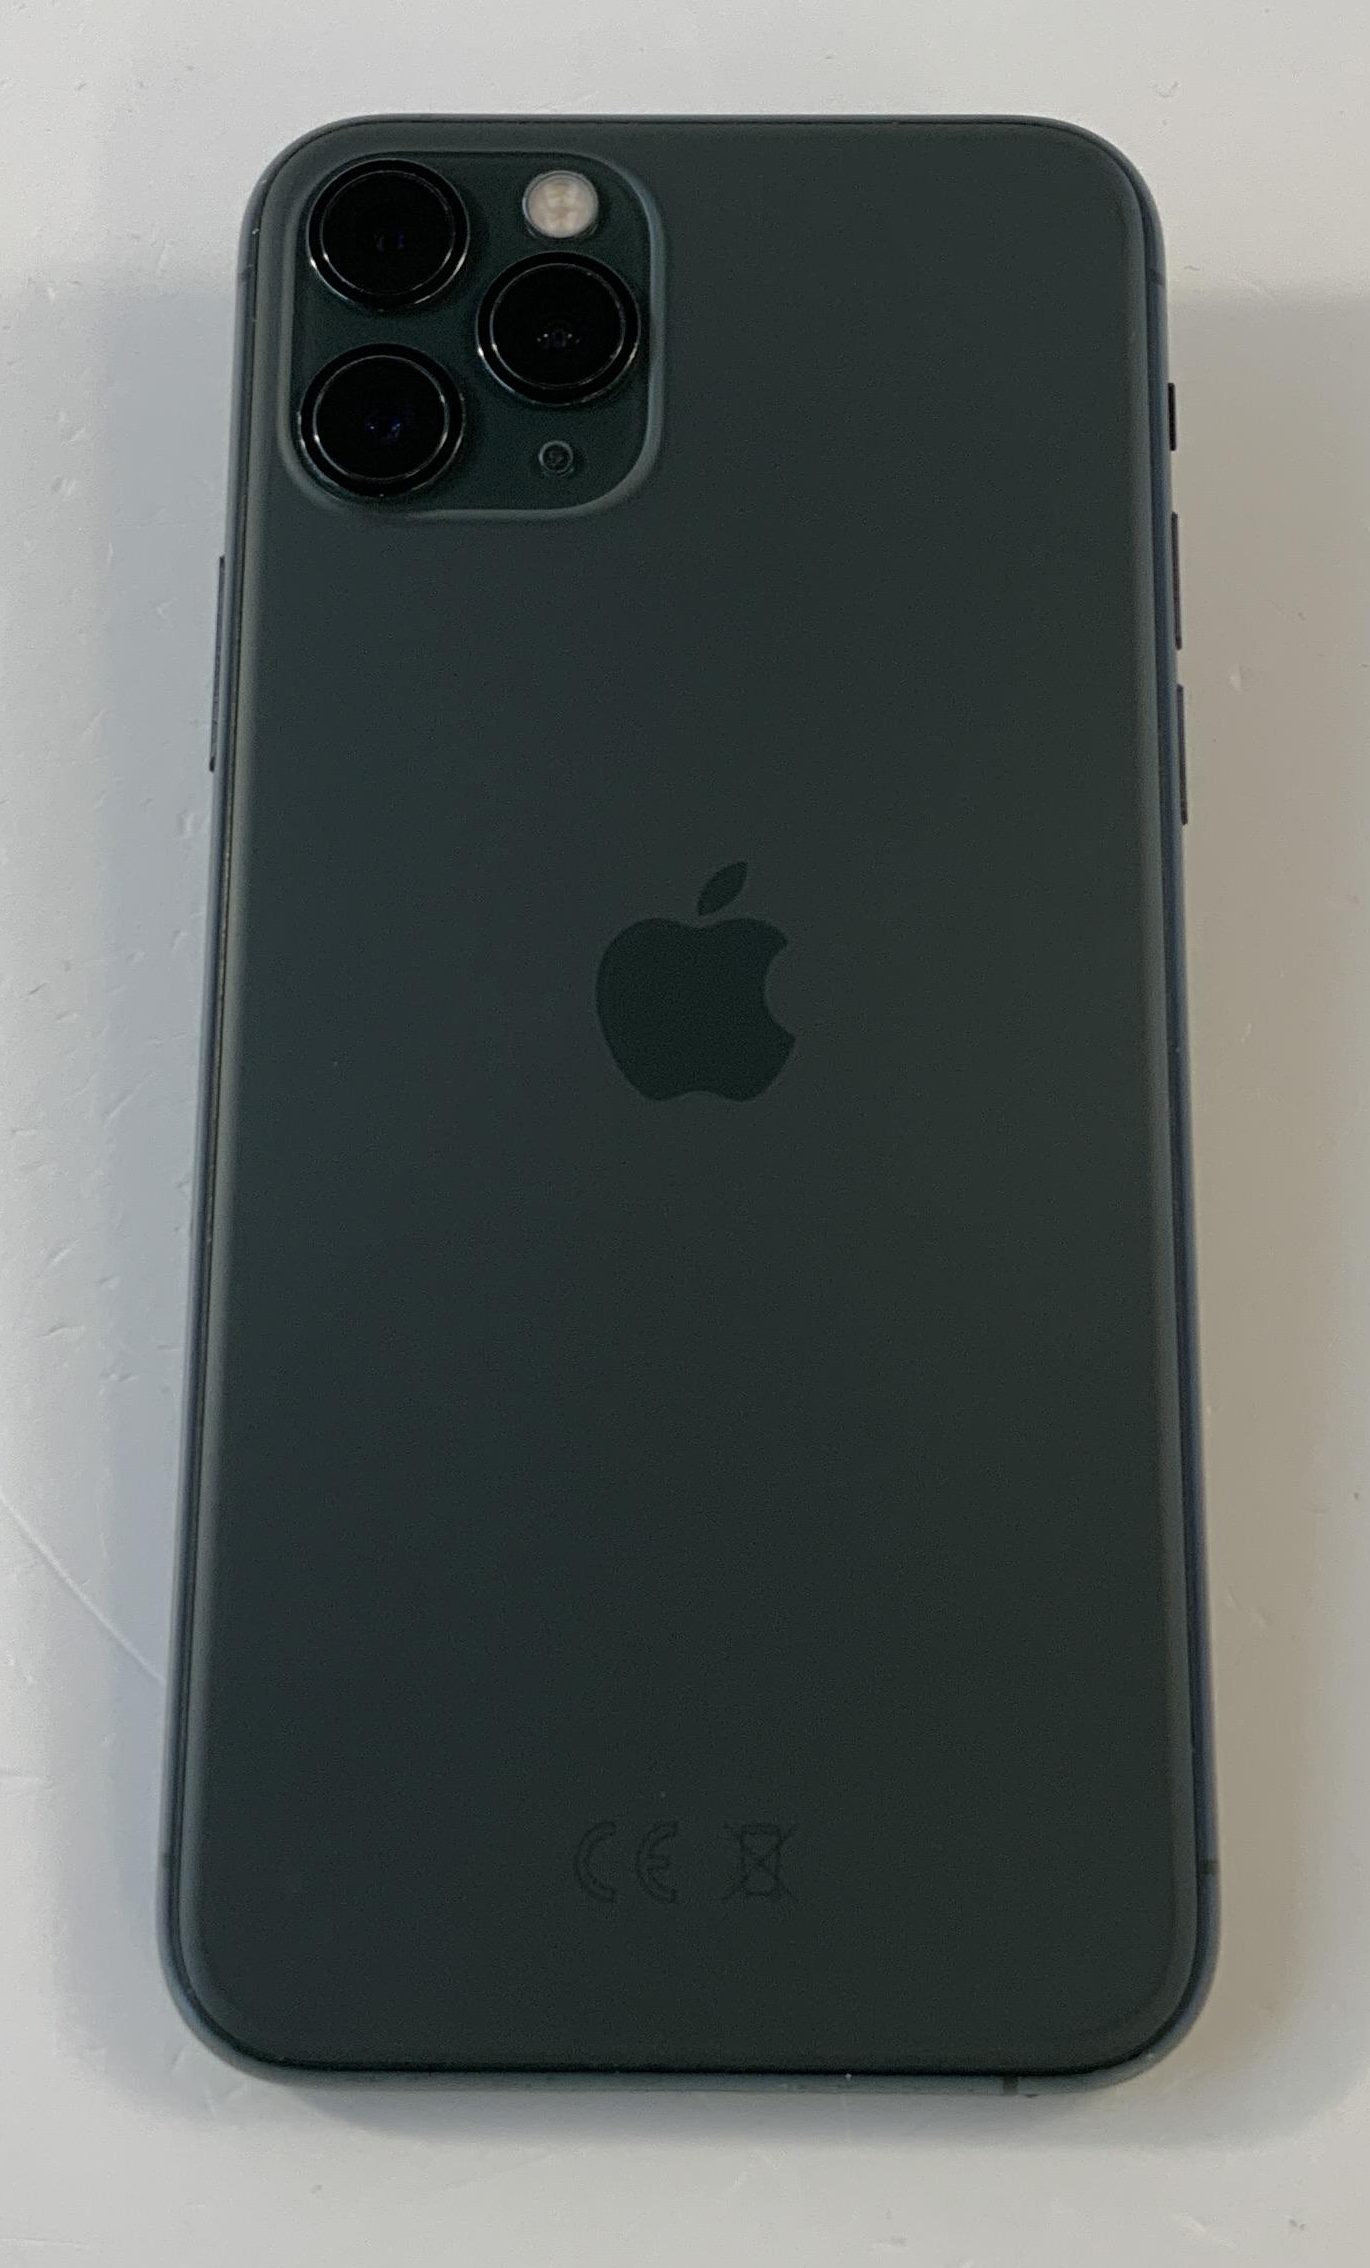 iPhone 11 Pro 64GB, 64GB, Midnight Green, imagen 2